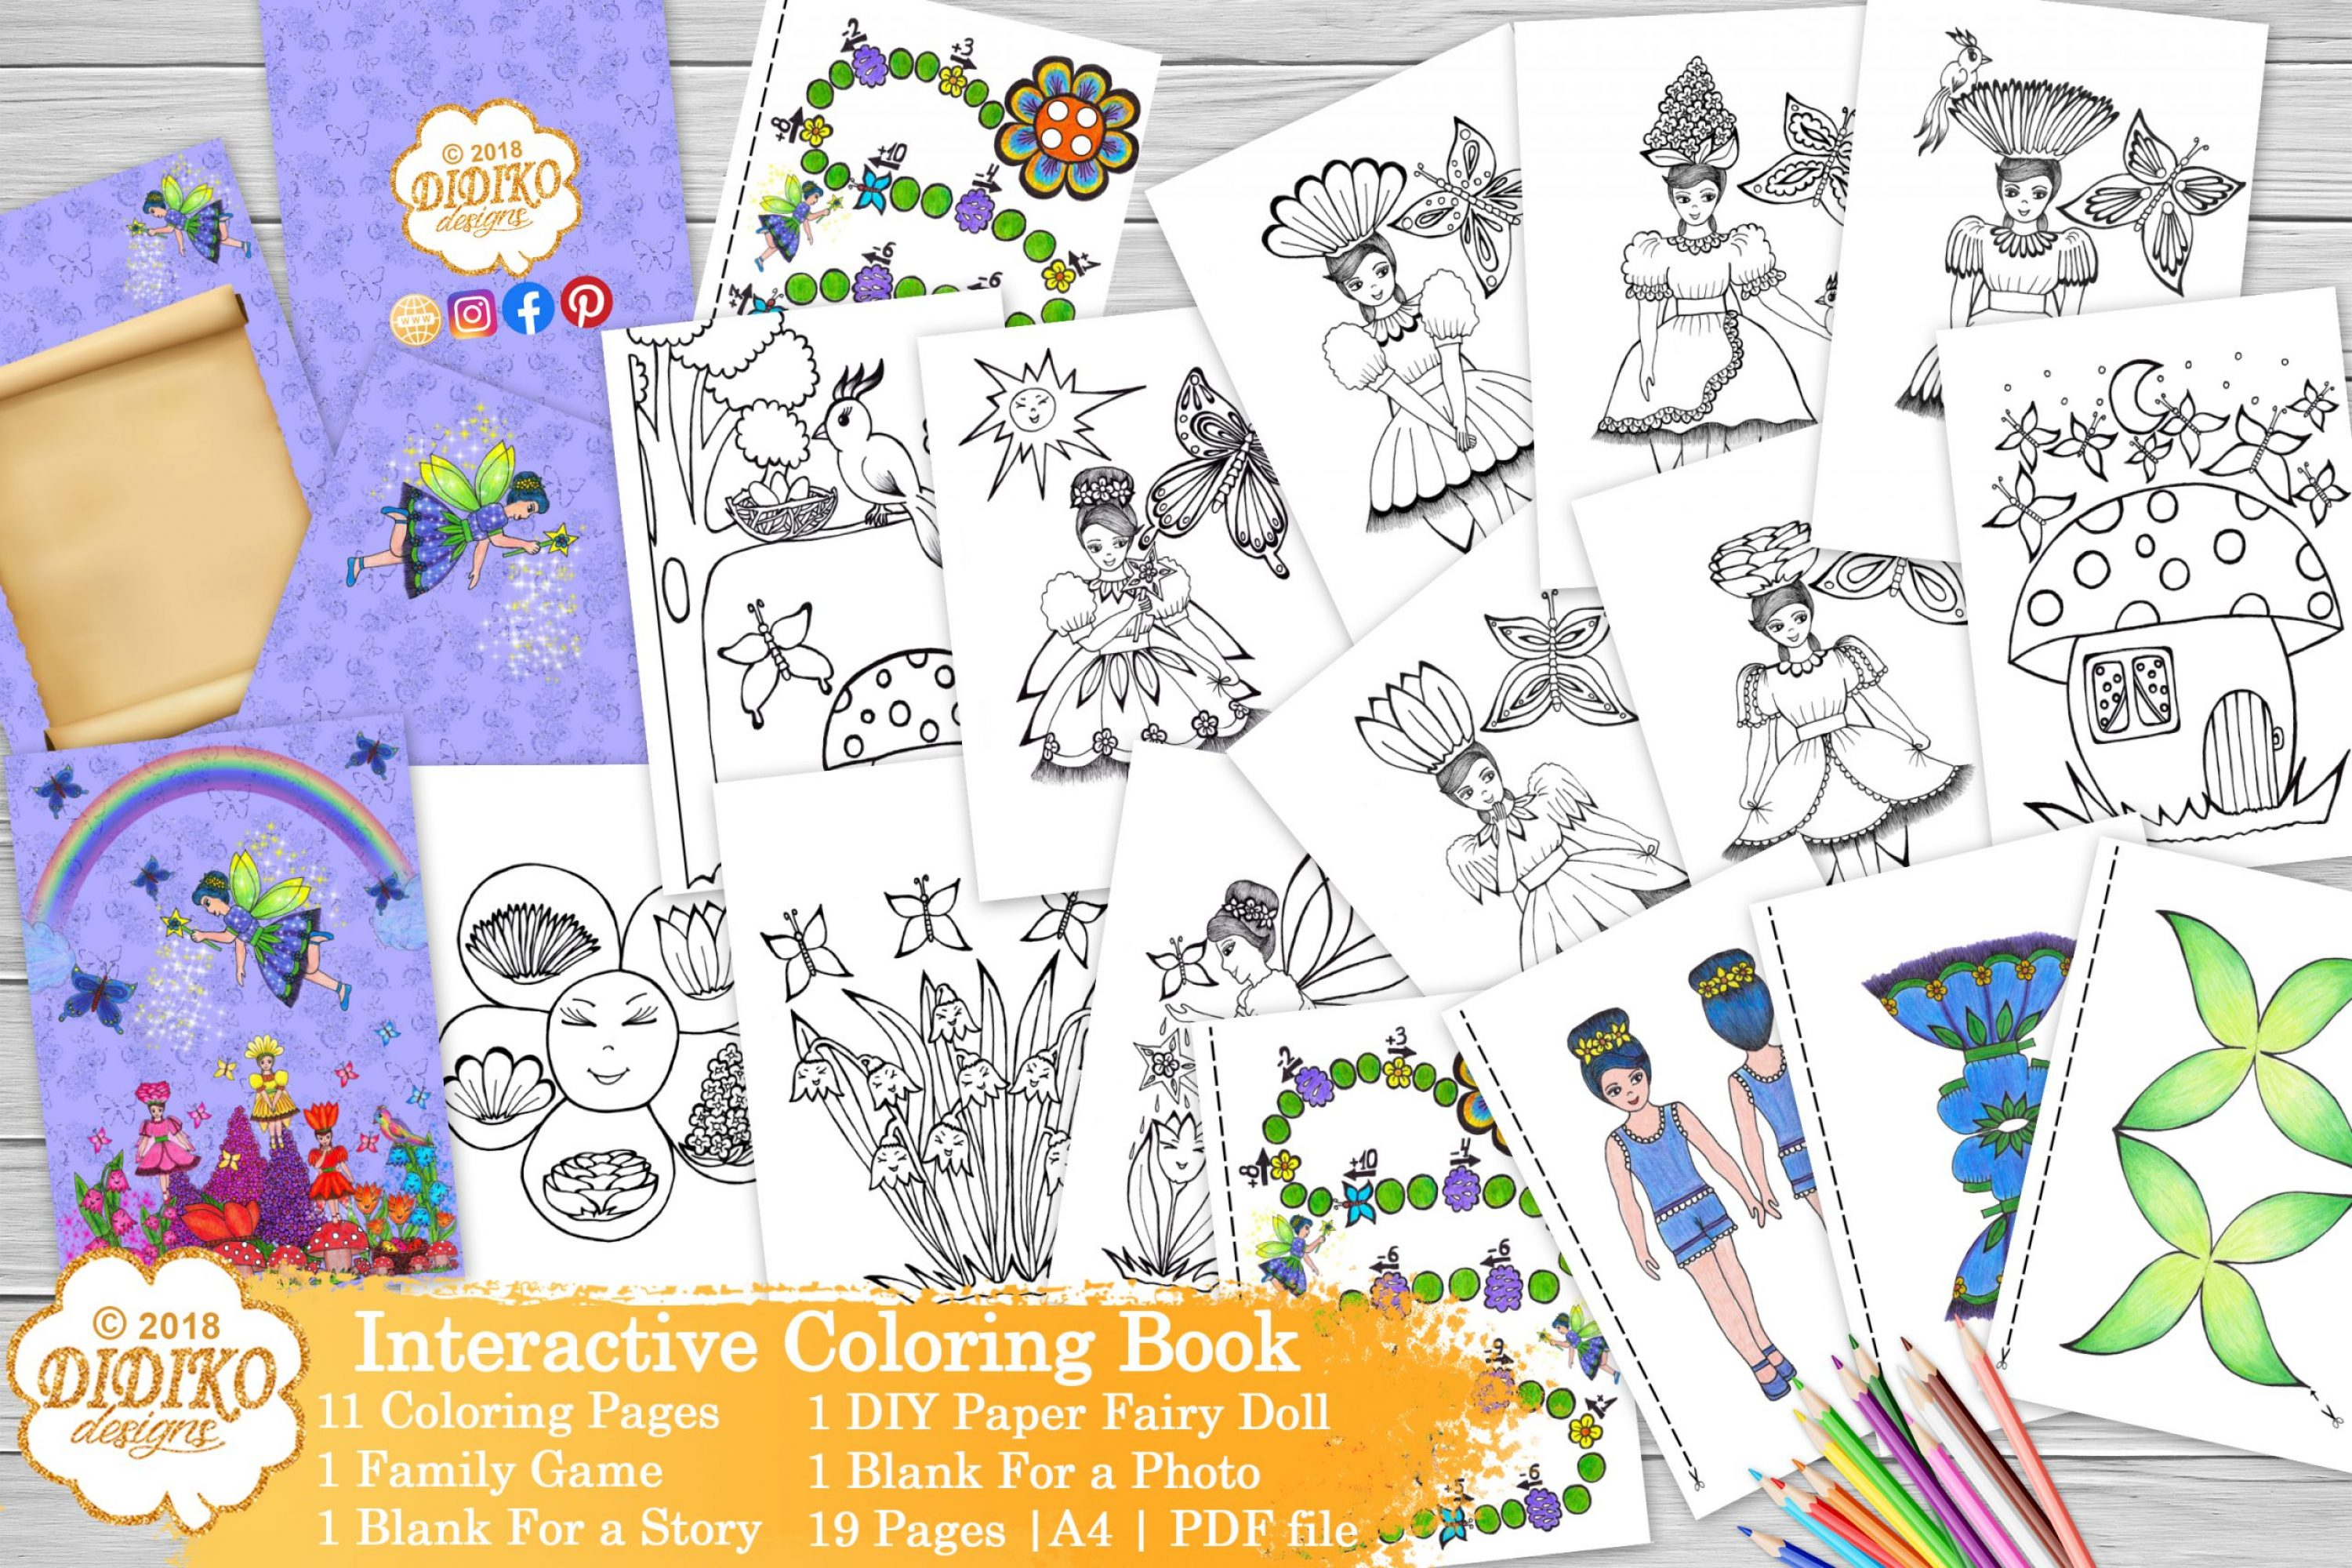 Digital Coloring Book, Fairy Coloring Pages, PDF Files